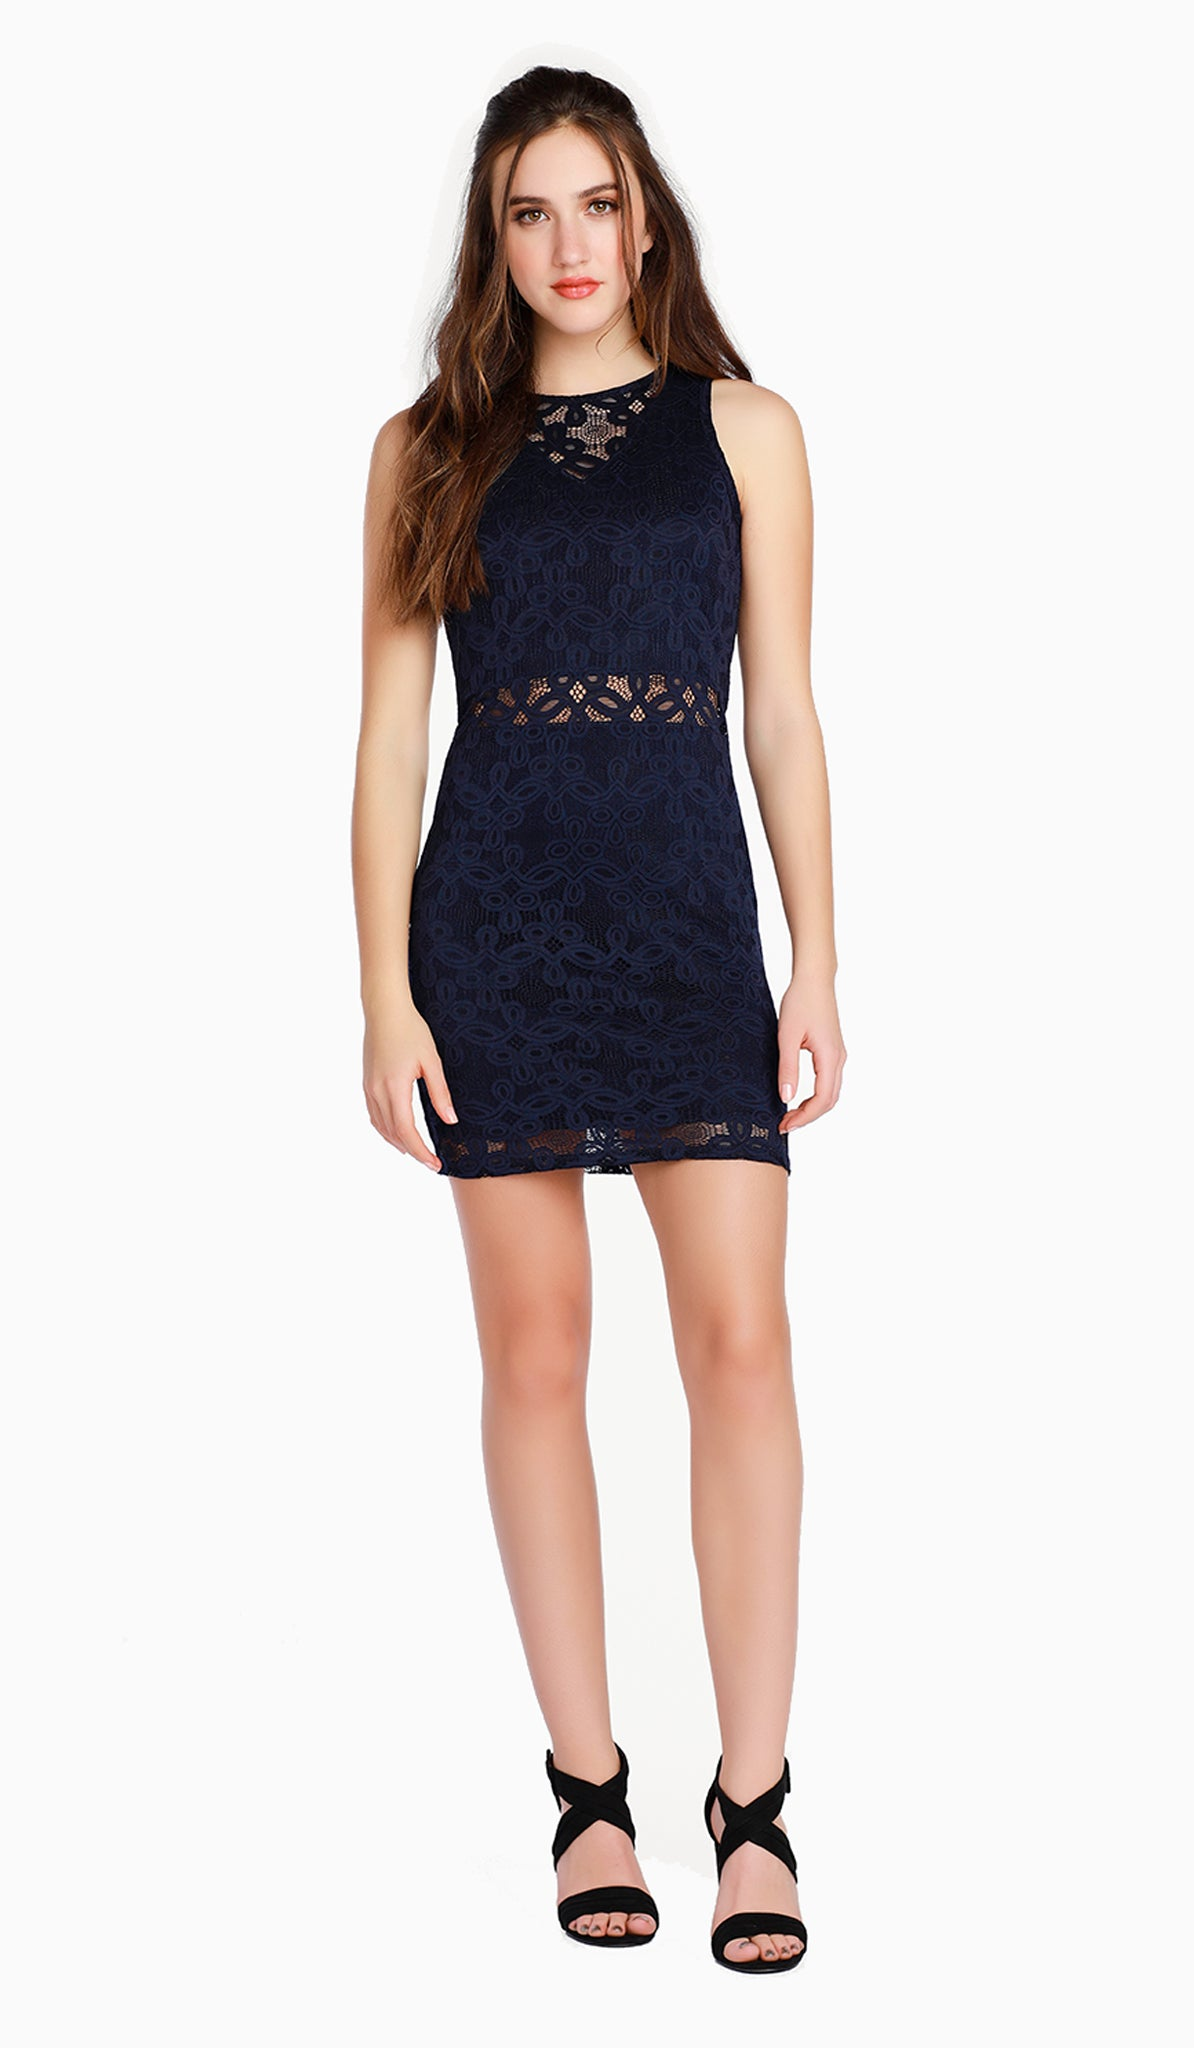 The Sally Miller Olivia Dress | Ink stretch lace overlay bodycon dress with illusion yoke and waist and zipper at back  | Luxury tween dresses & juniors dresses for all occasions and events